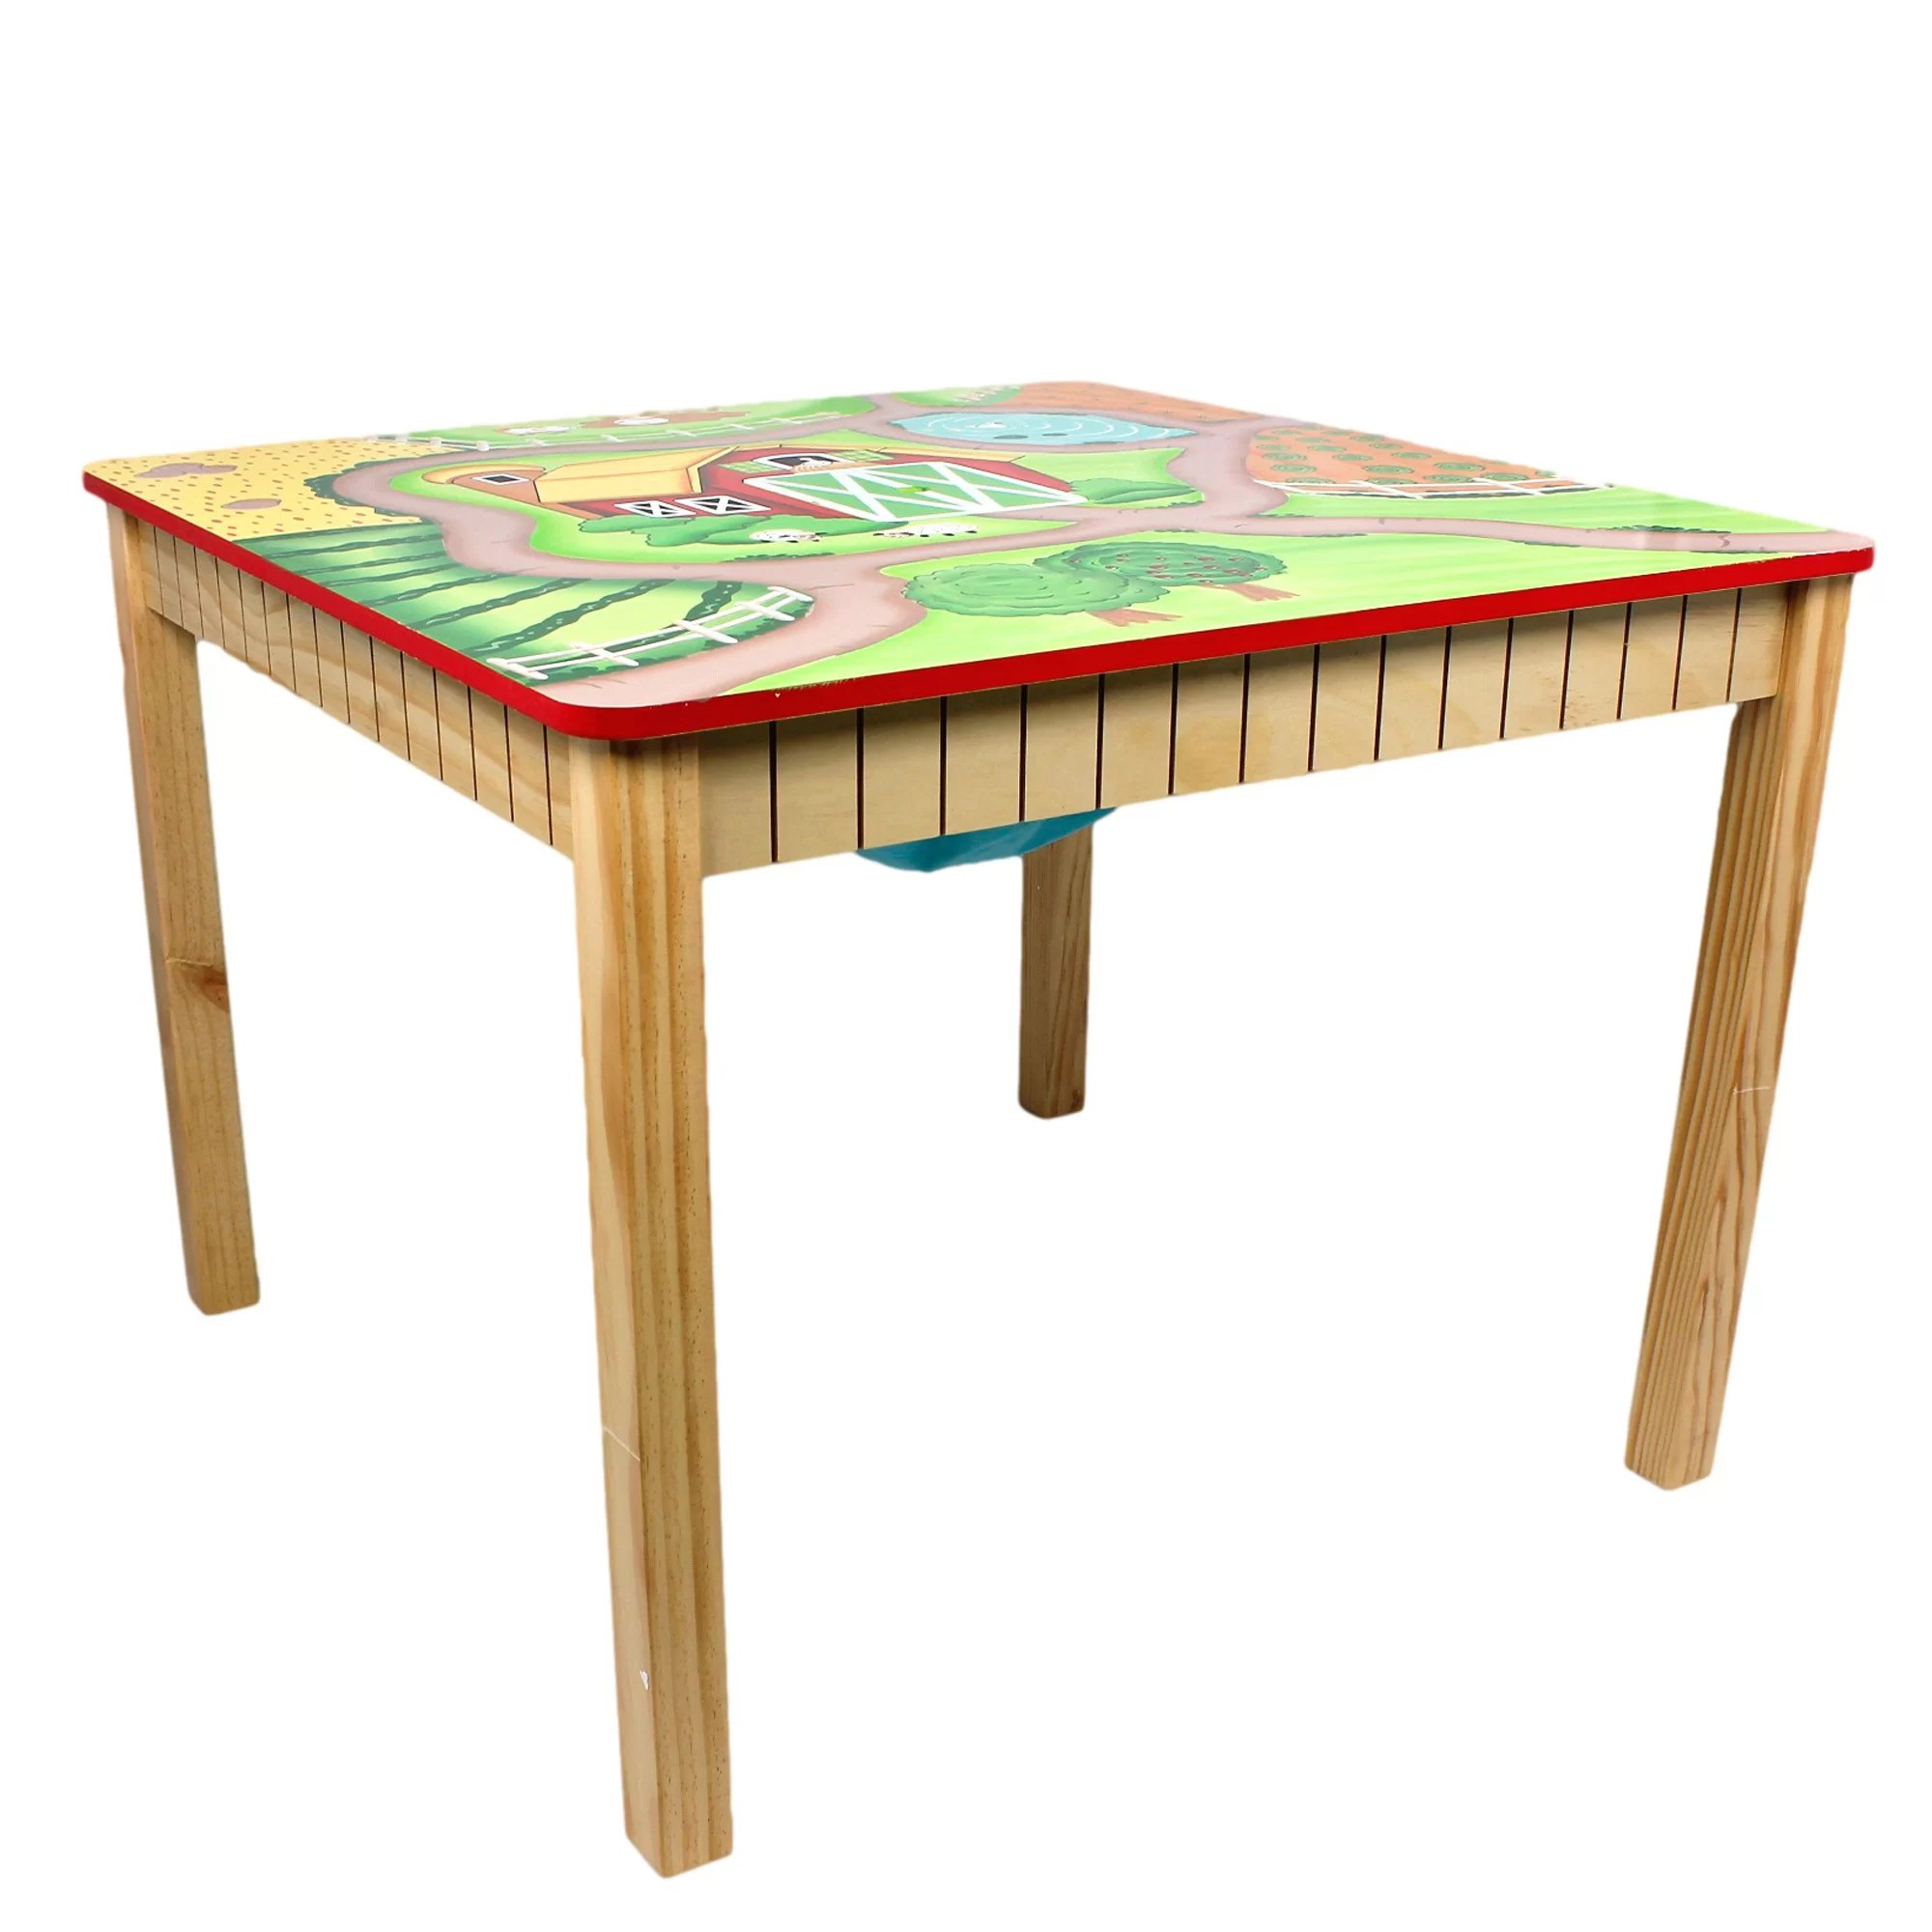 safety 1st 5 piece childrens table and chair set folding plans fantasy fields happy farm kids